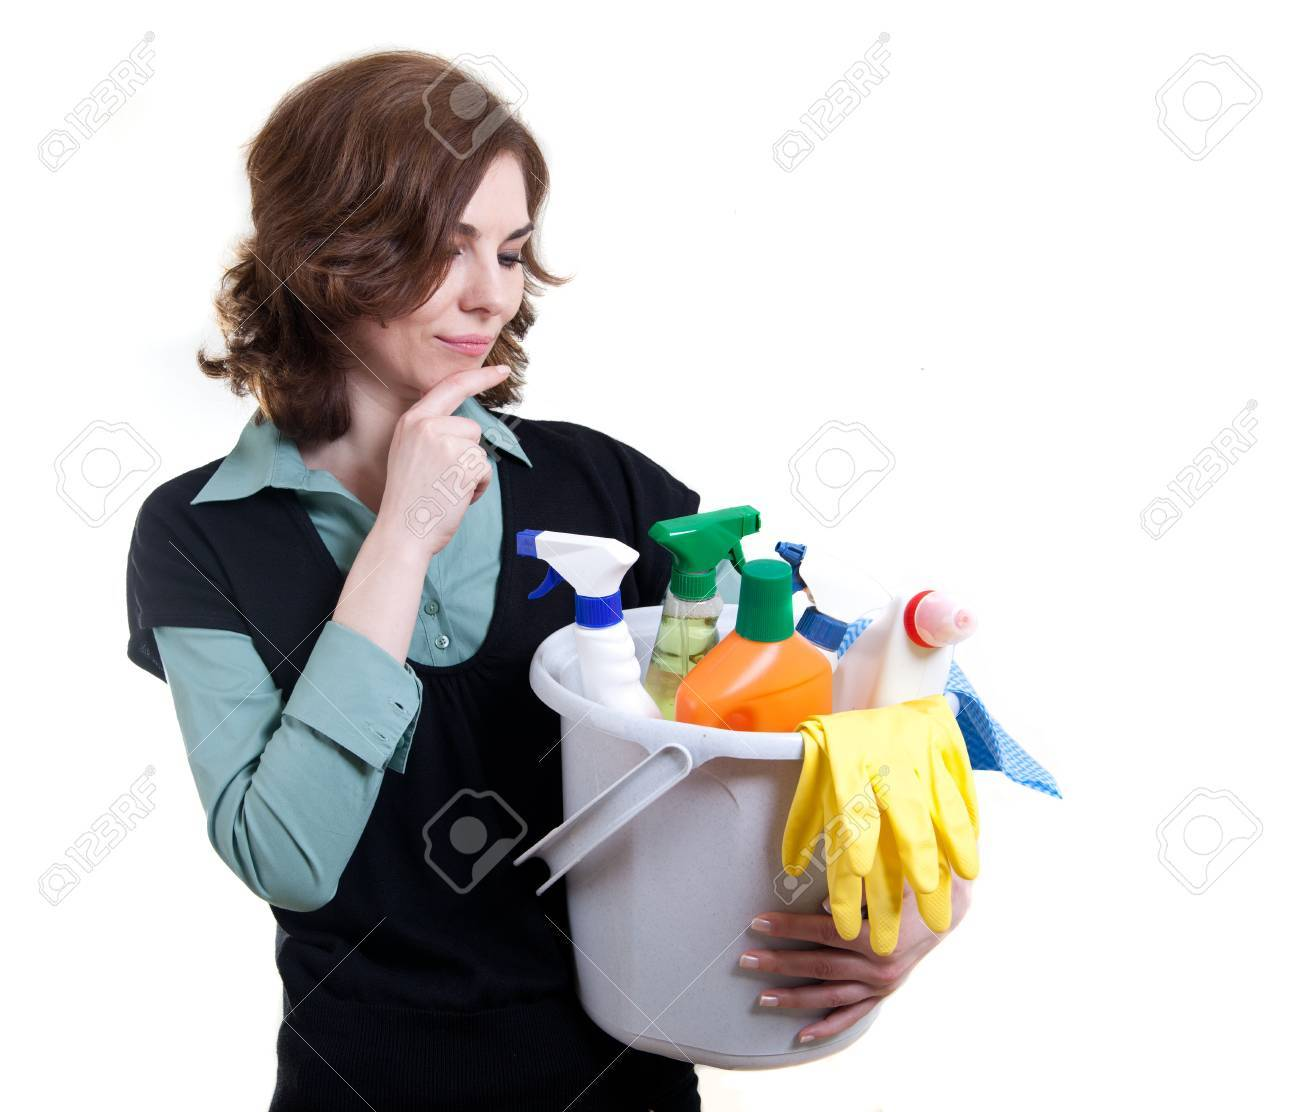 Cleaning woman thinking Stock Photo - 18359379